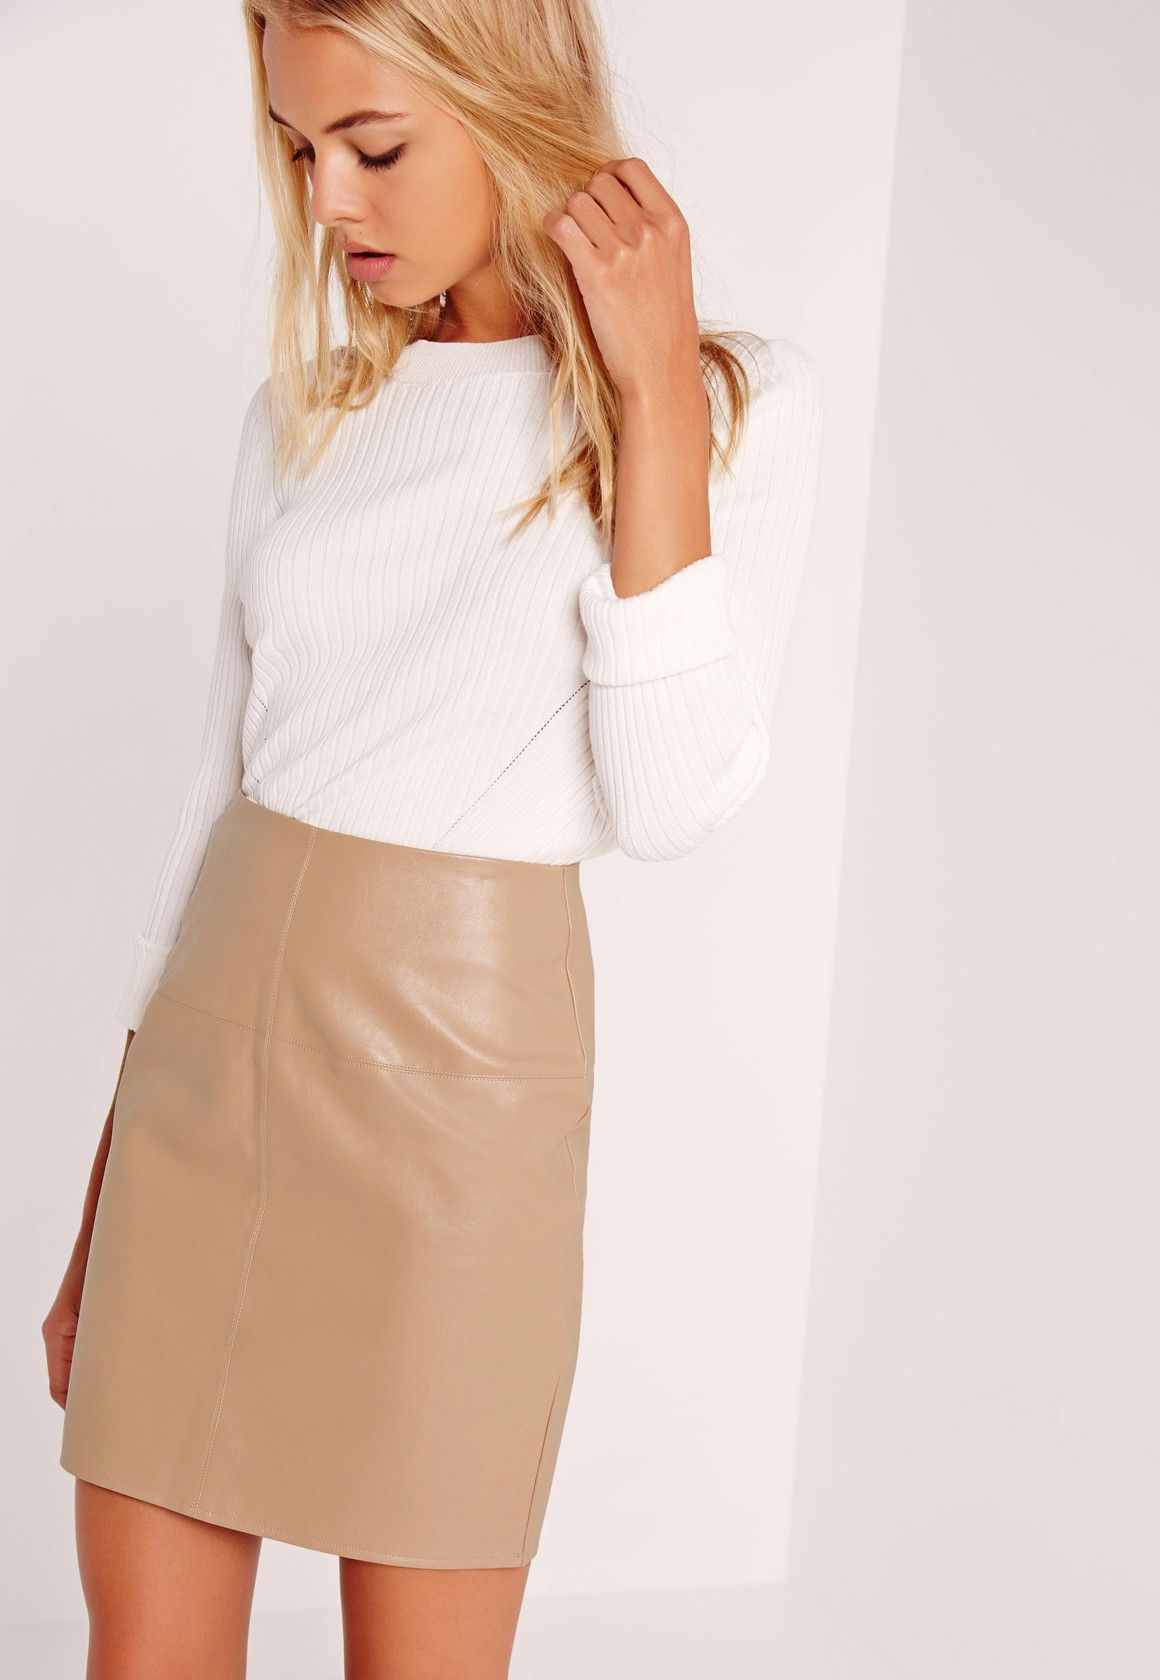 b23e57f2a Get set to look asspirational in this classic mini skirt. In a neutral tan  hue